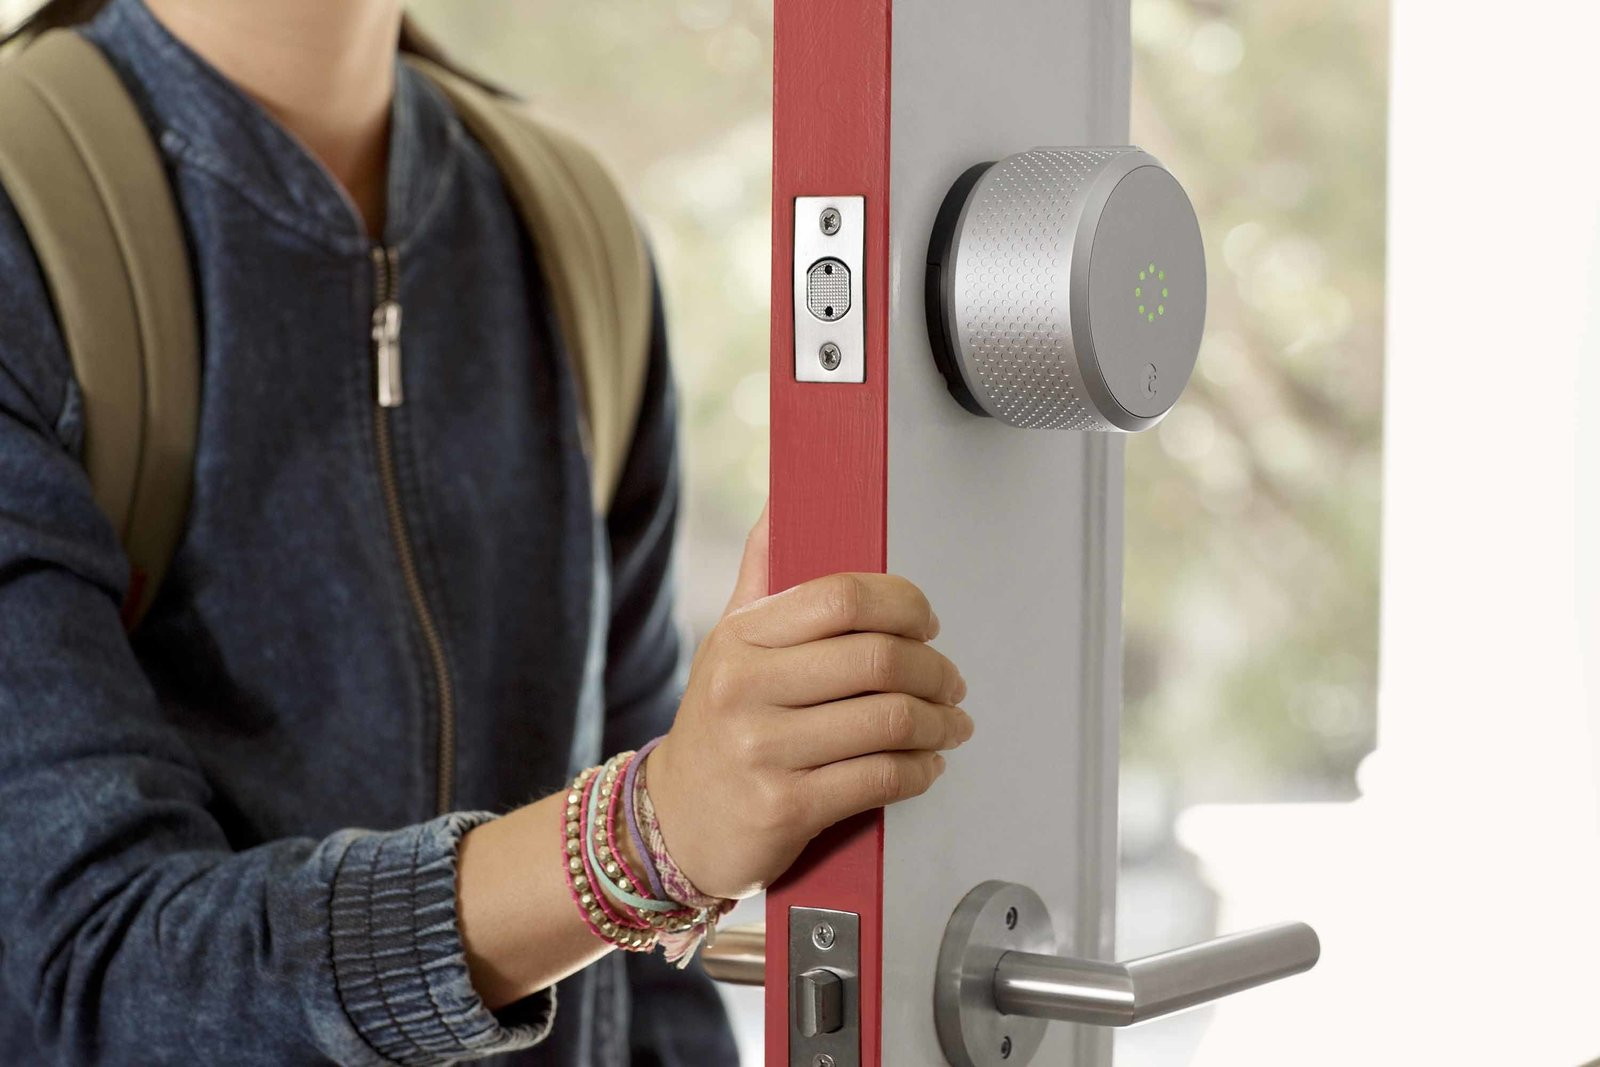 Tech enthusiasts will recognize August Smart Lock as the DIY security device that allows homeowners to create virtual keys for guests to come and go. Design seekers will notice the second-generation lock, soon to ship, has a more tactile, intuitive form profile that resembles a traditional knob. The latest model is also Apple Homekit enabled.  Photo 1 of 6 in 5 Key Elements of Smart Home Functionality from Buzz-Worthy Smart Home Innovations Coming Out of CES 2016